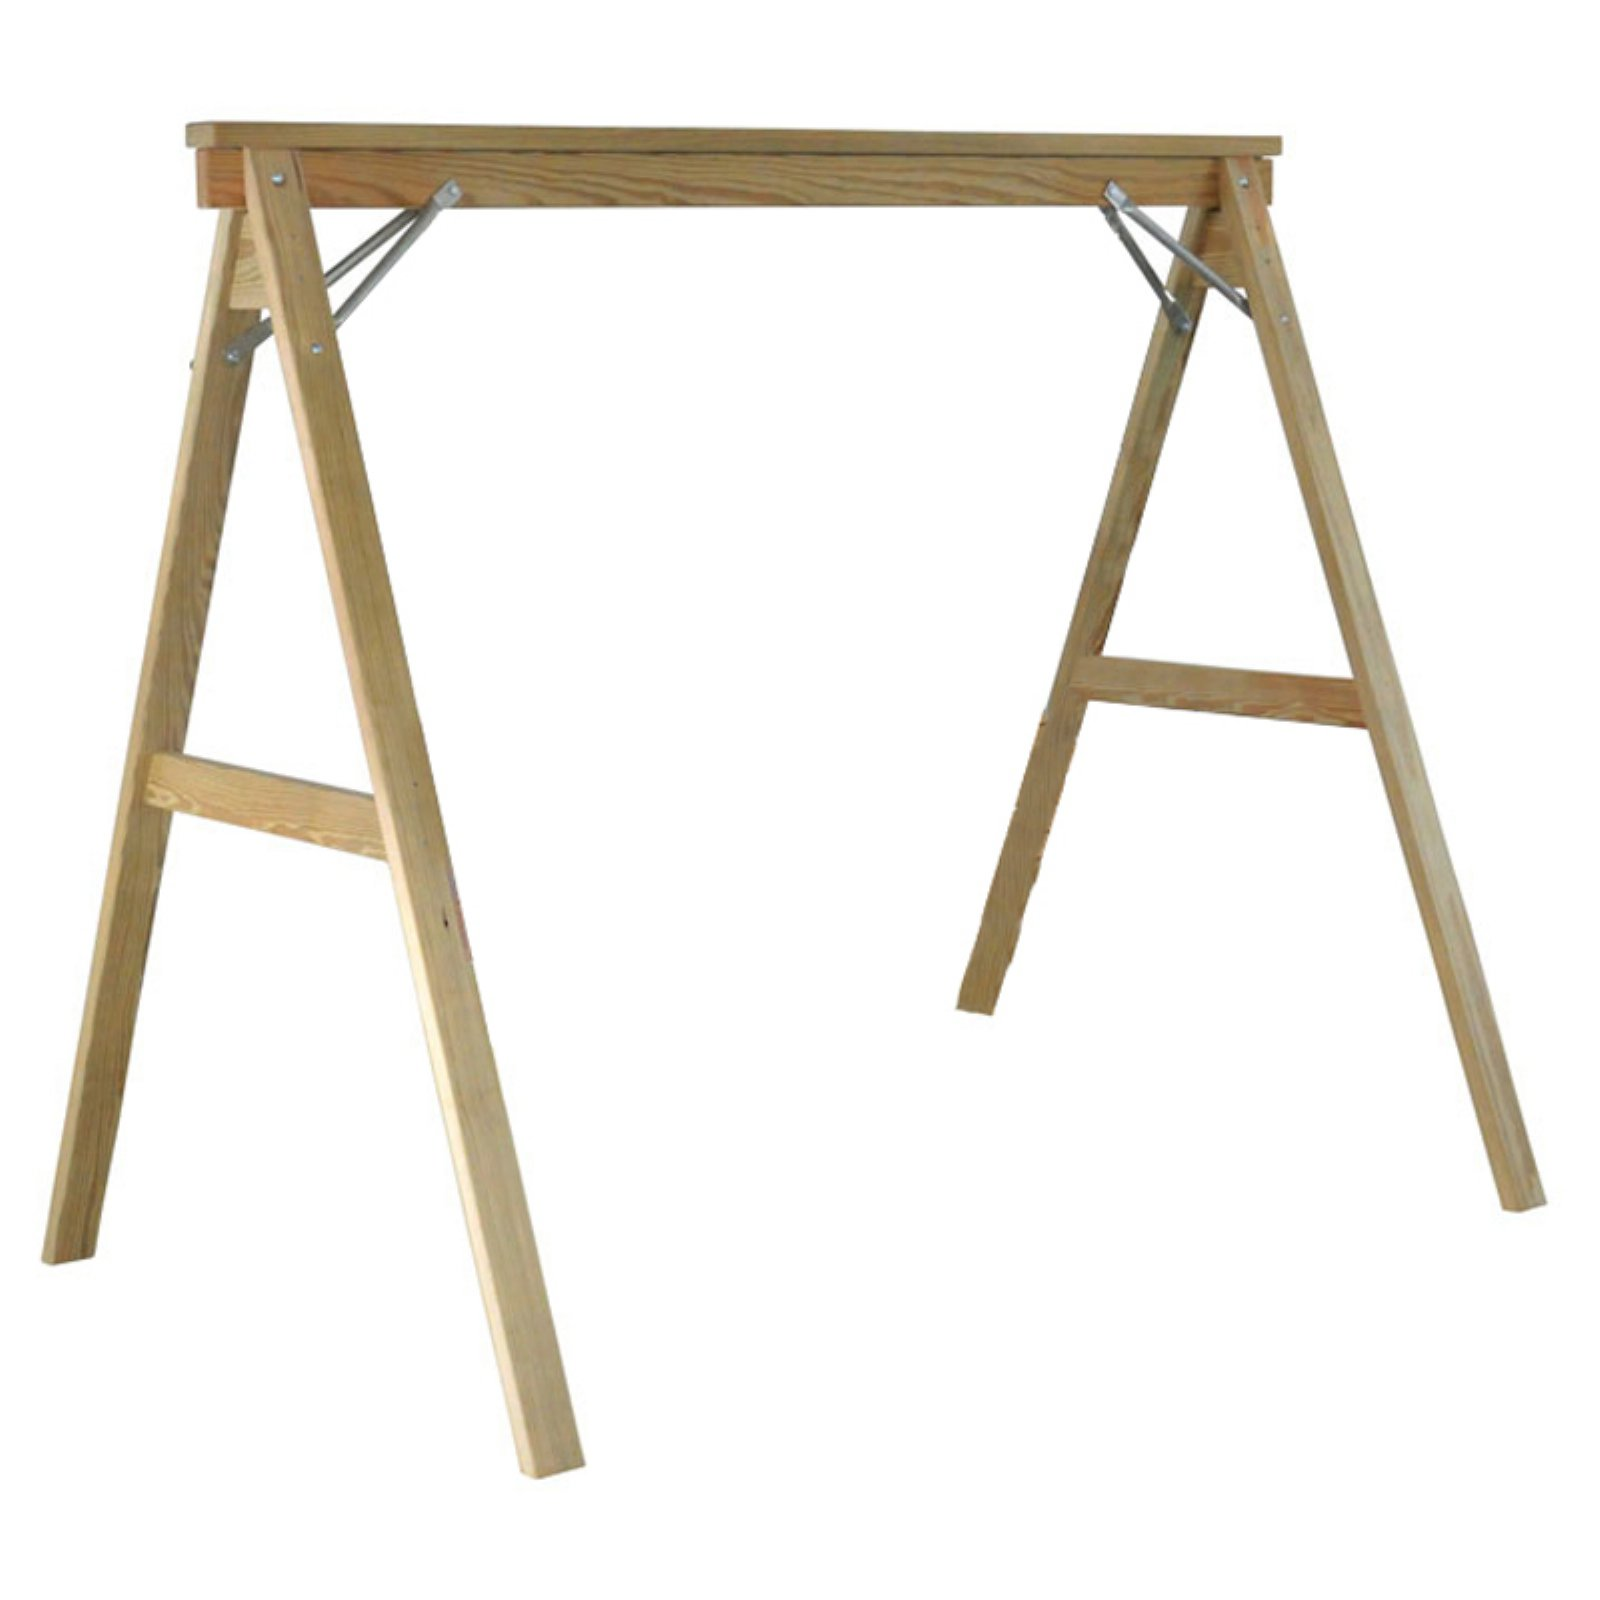 Hershy Way A-Frame Pine Wood Porch Swing Stand by Hershy Way